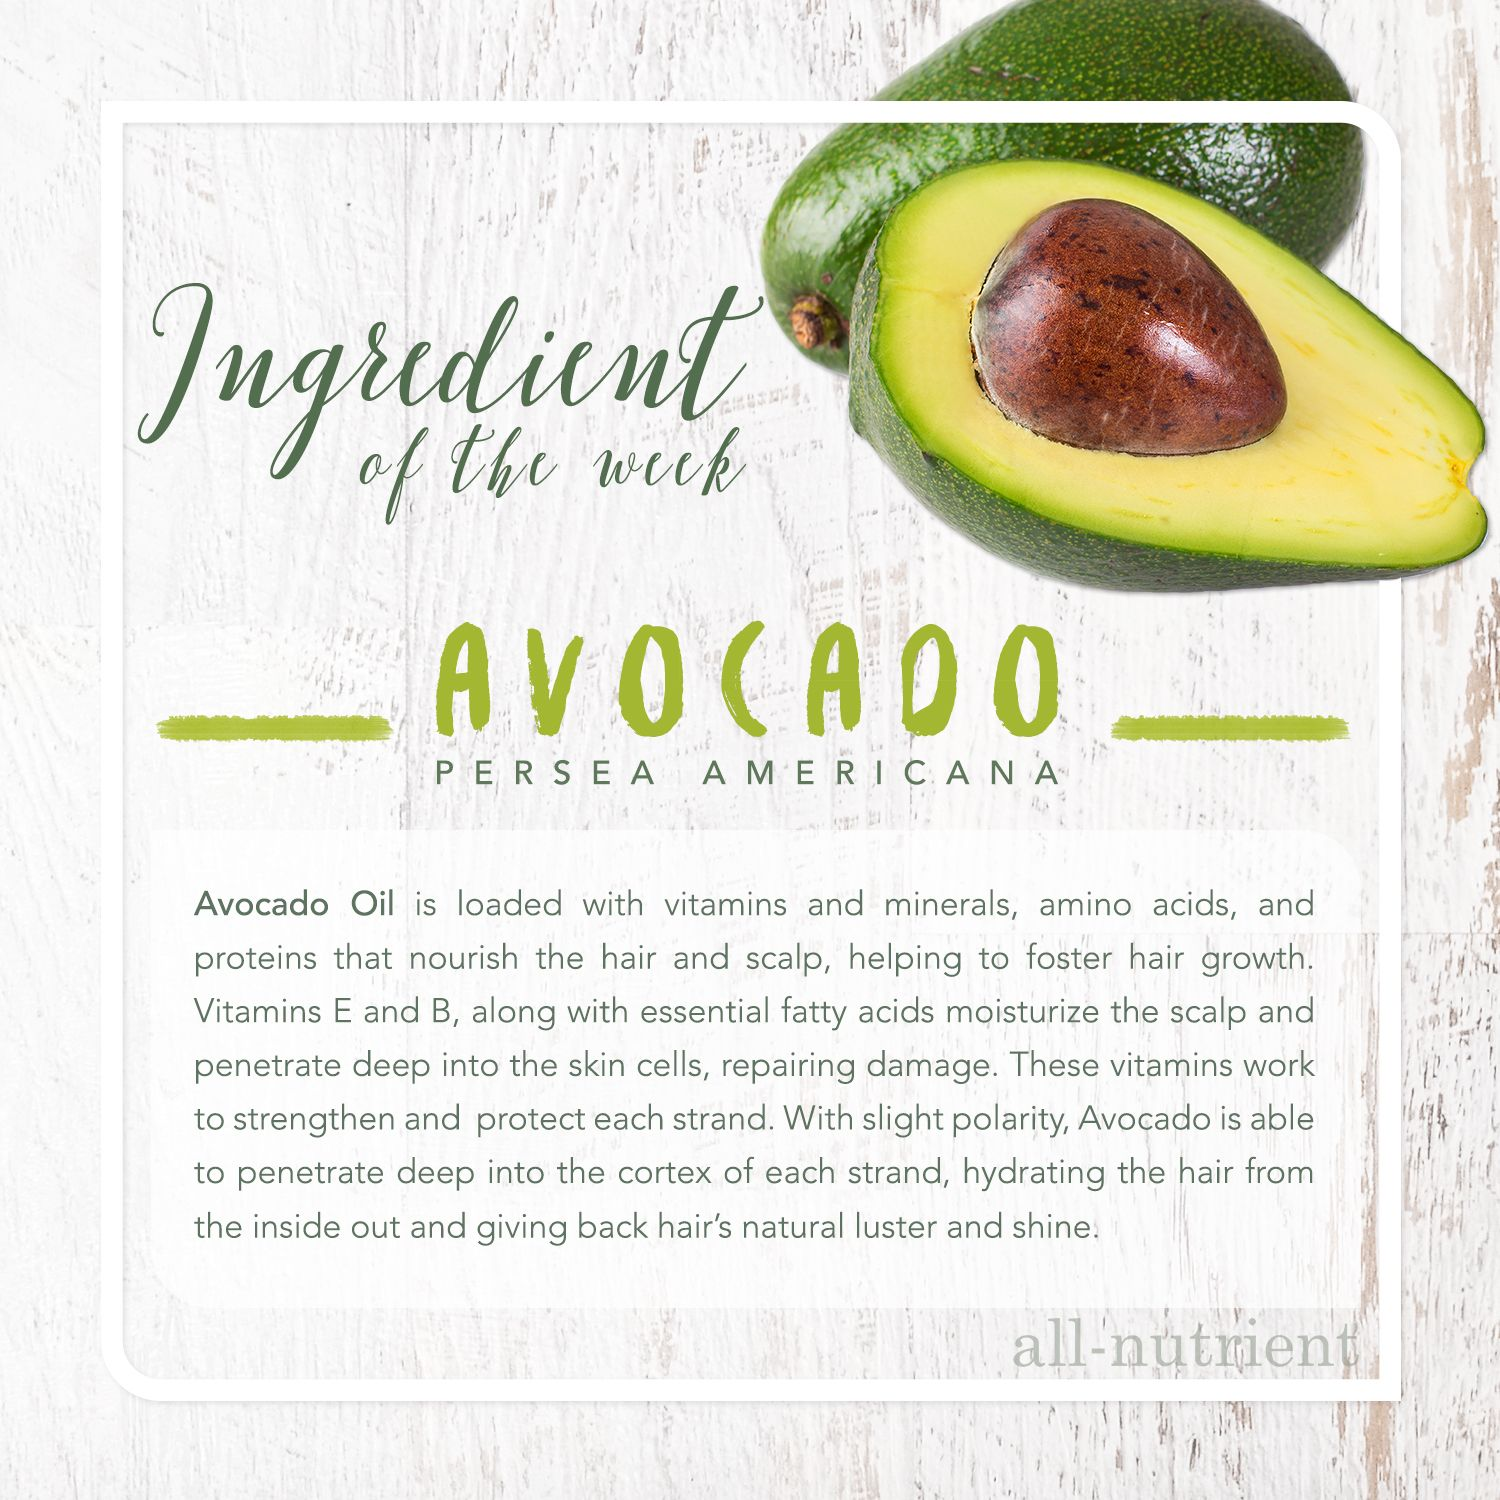 Loaded with vitamins and minerals to nourish your hair and scalp! #IngredientoftheWeek #Avocado #AvocadoOil